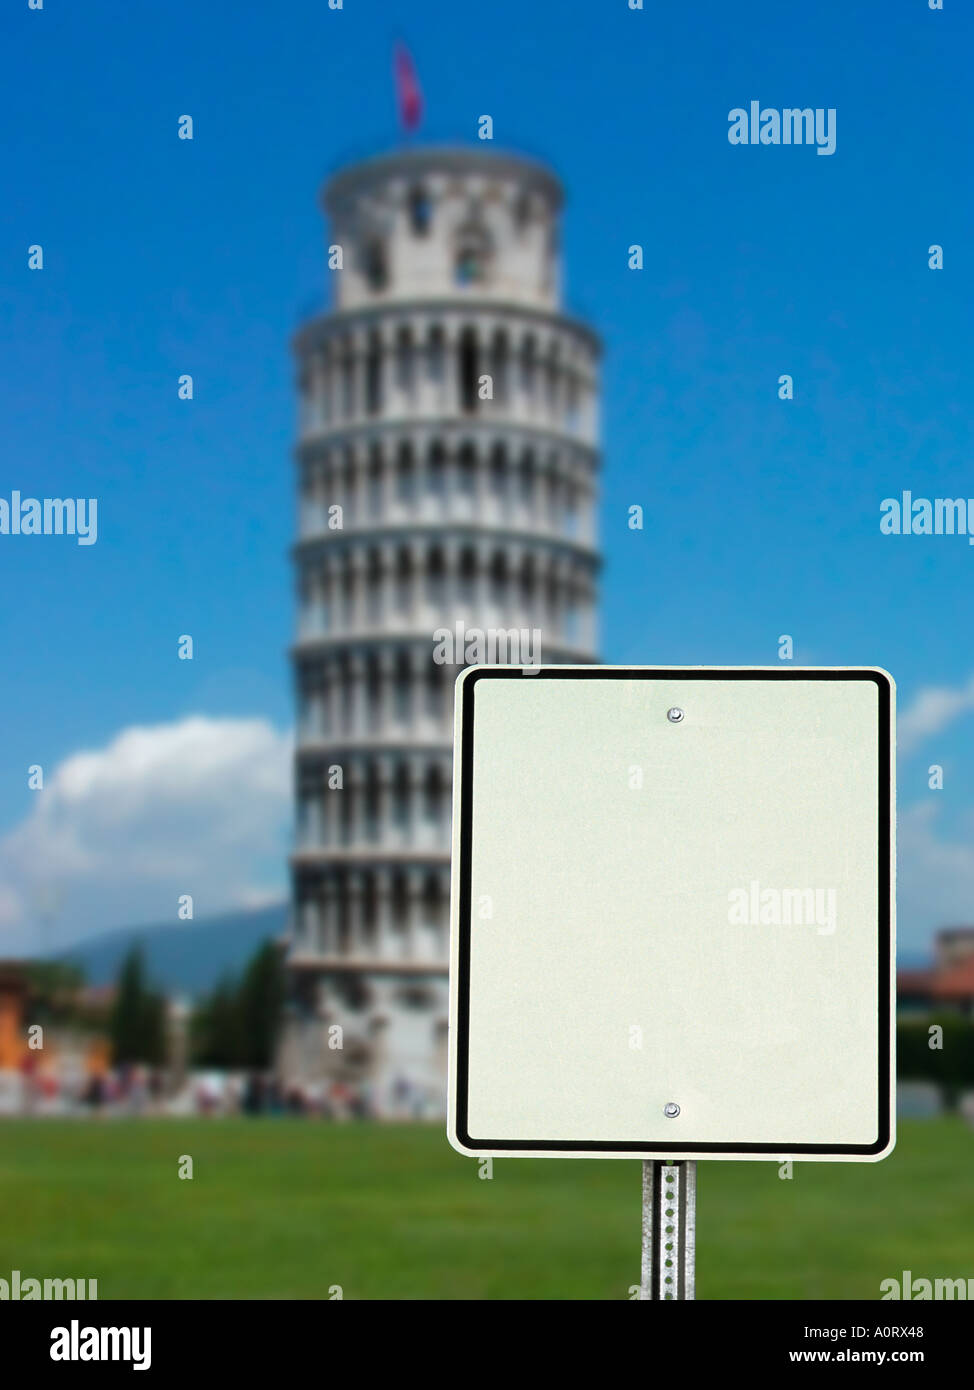 Blank sign with the Leaning Tower of Pisa straight up in the background - one image in a series of three - Stock Image